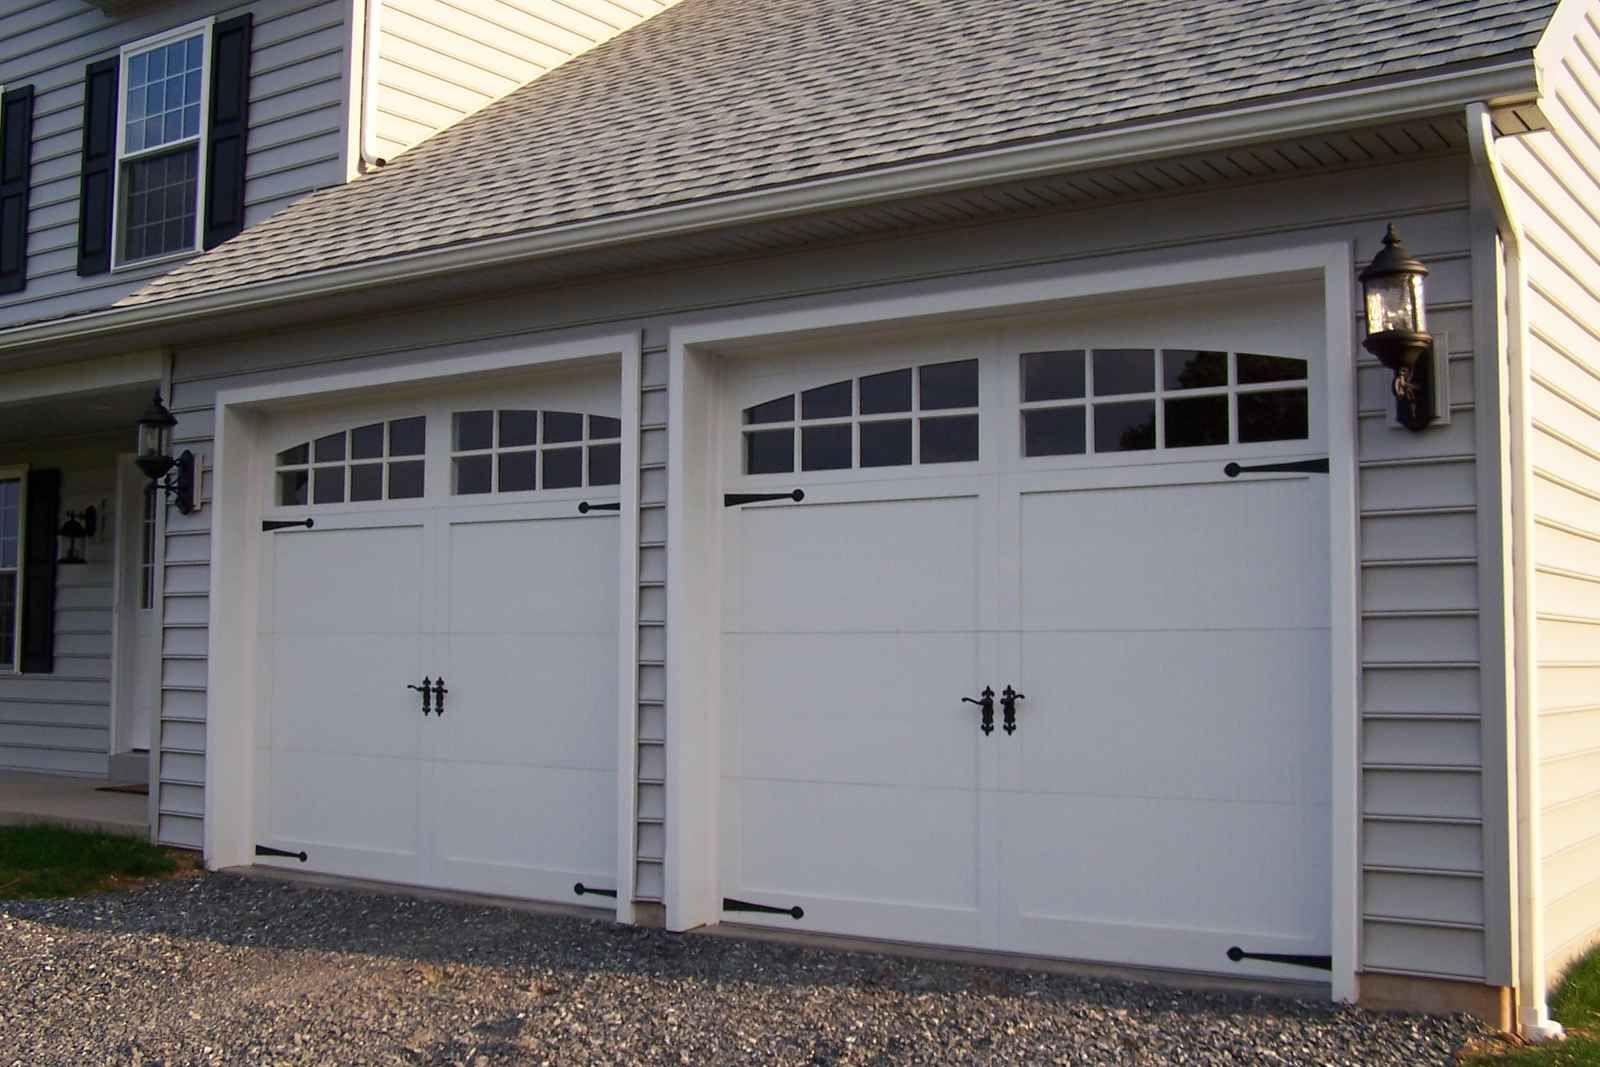 Clopay Coachman Collection Steel And Composite Carriage Style Garage Doors Design 11 With Arch4 Windows Www Clopay Com Outdoor Decor Carriage Garage Door